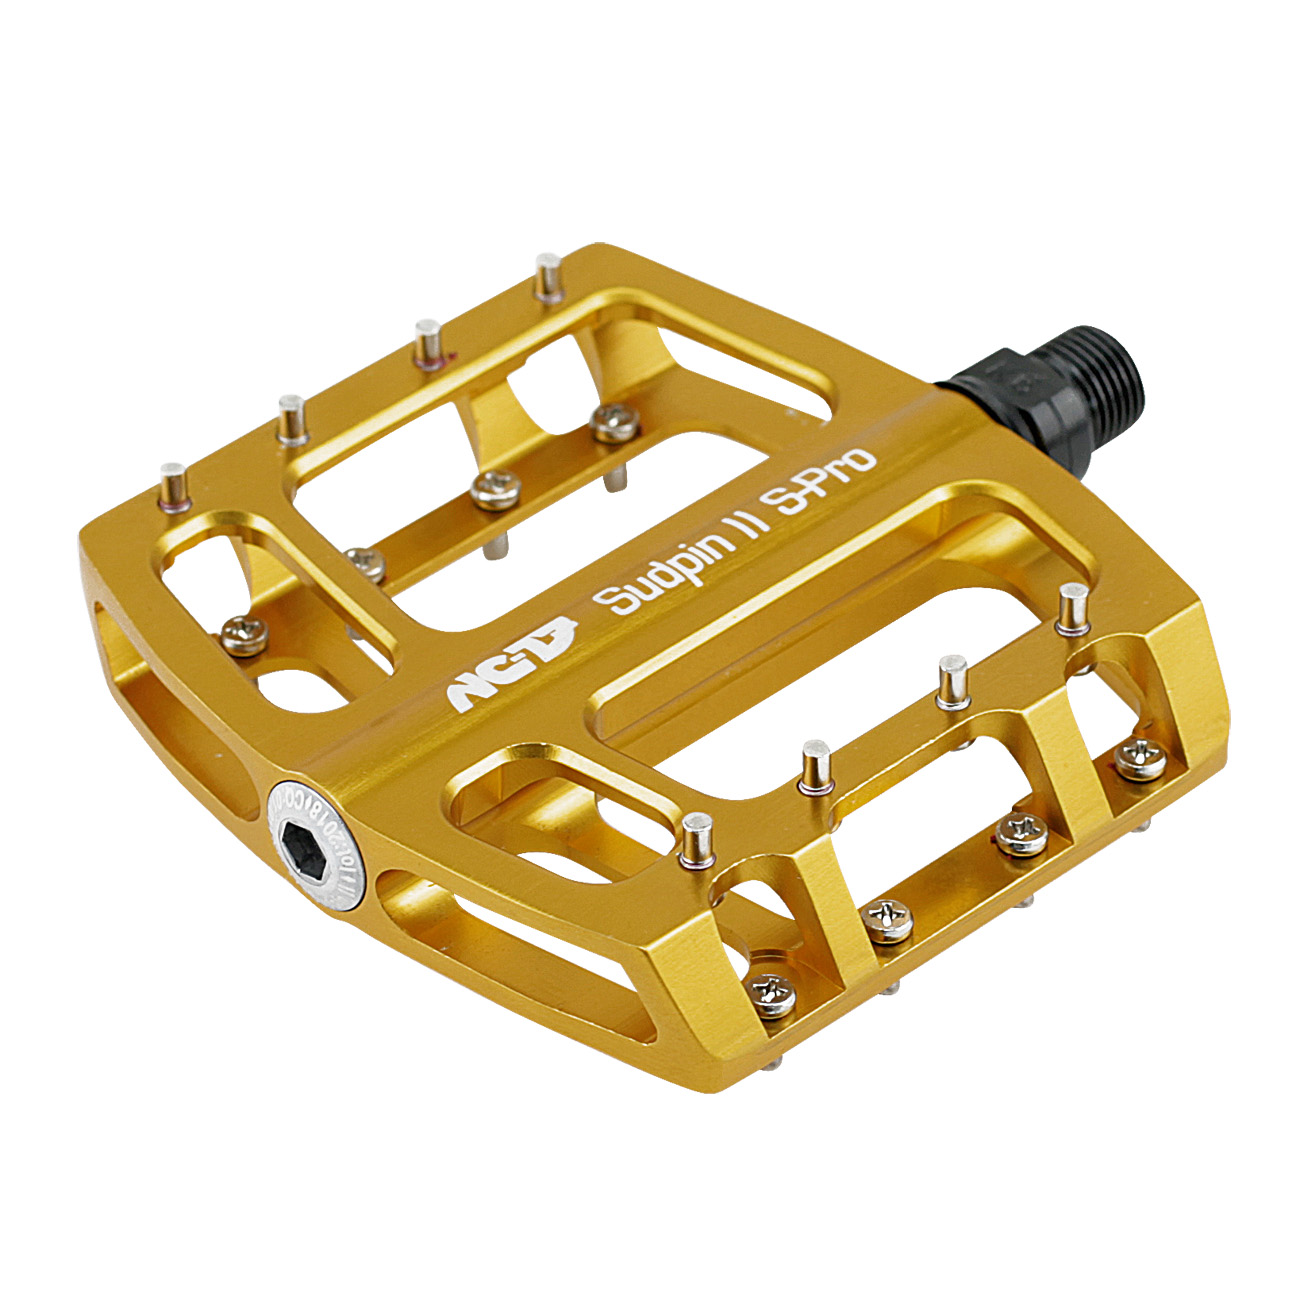 NC-17 Sudpin II S-Pro CNC<br/>Pedal, gold, Präzisionslager<br/>